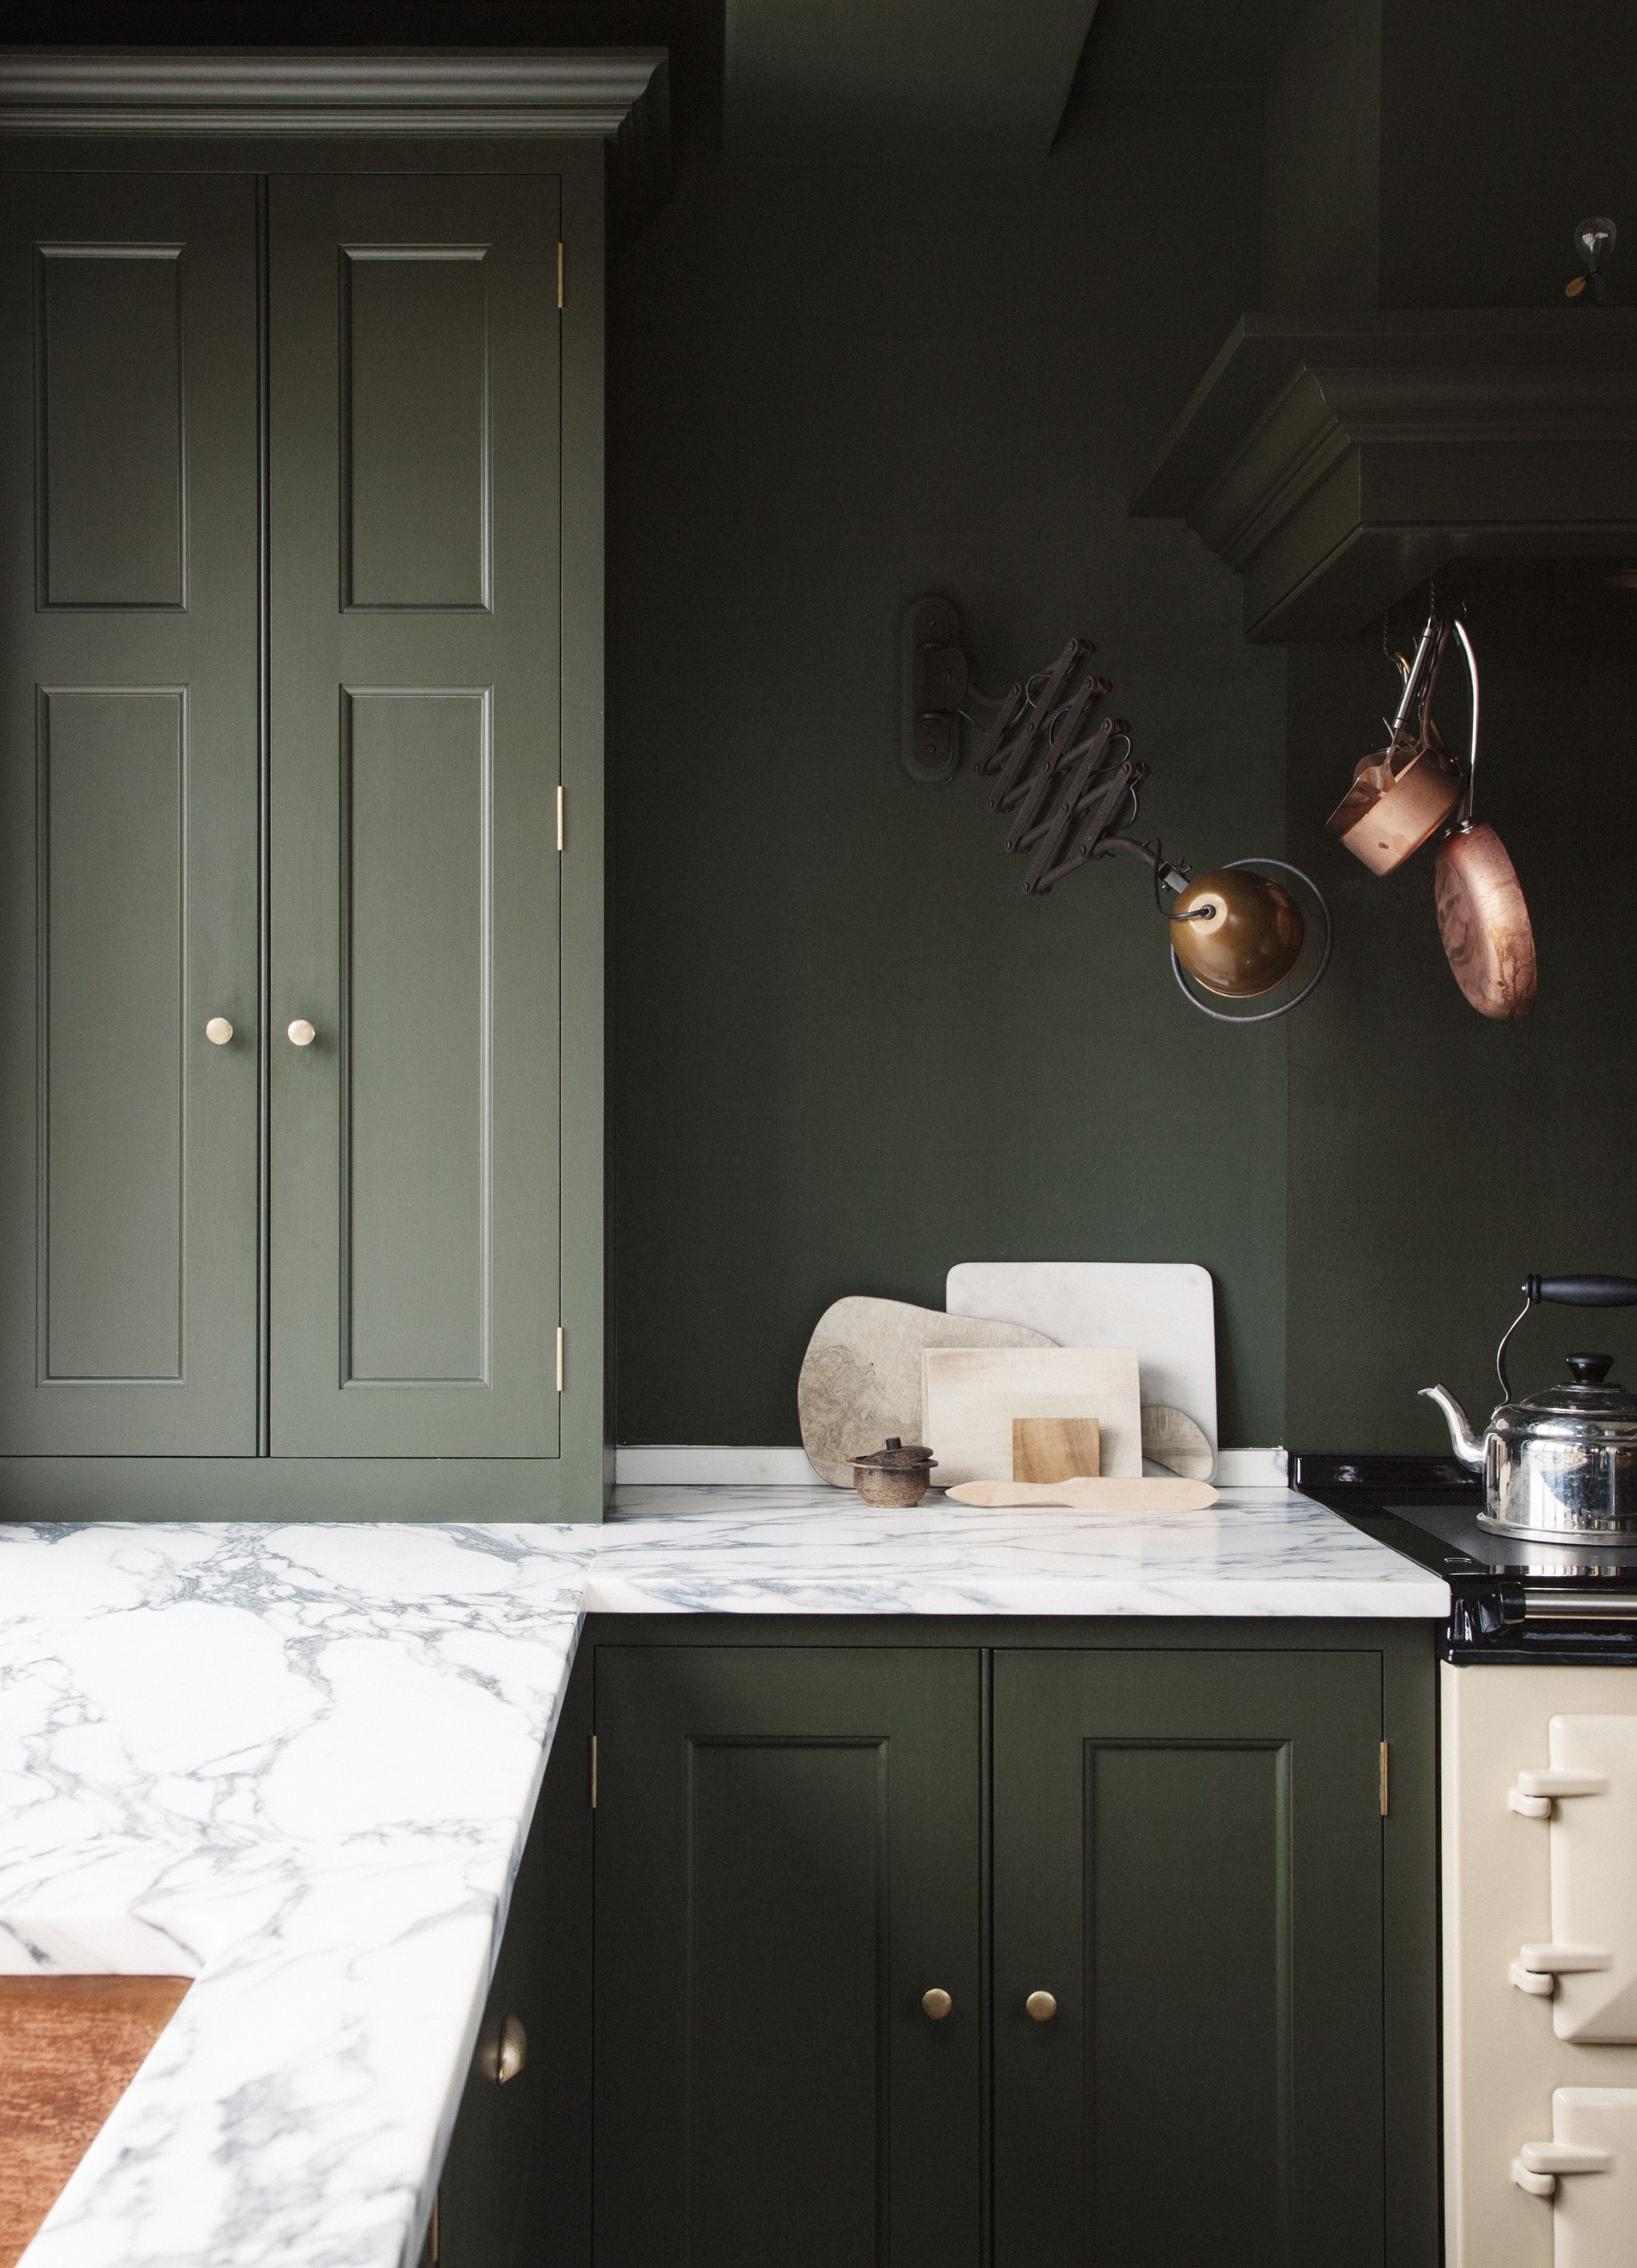 Green Kitchen Cabinet And Matching Wall Colour Dark